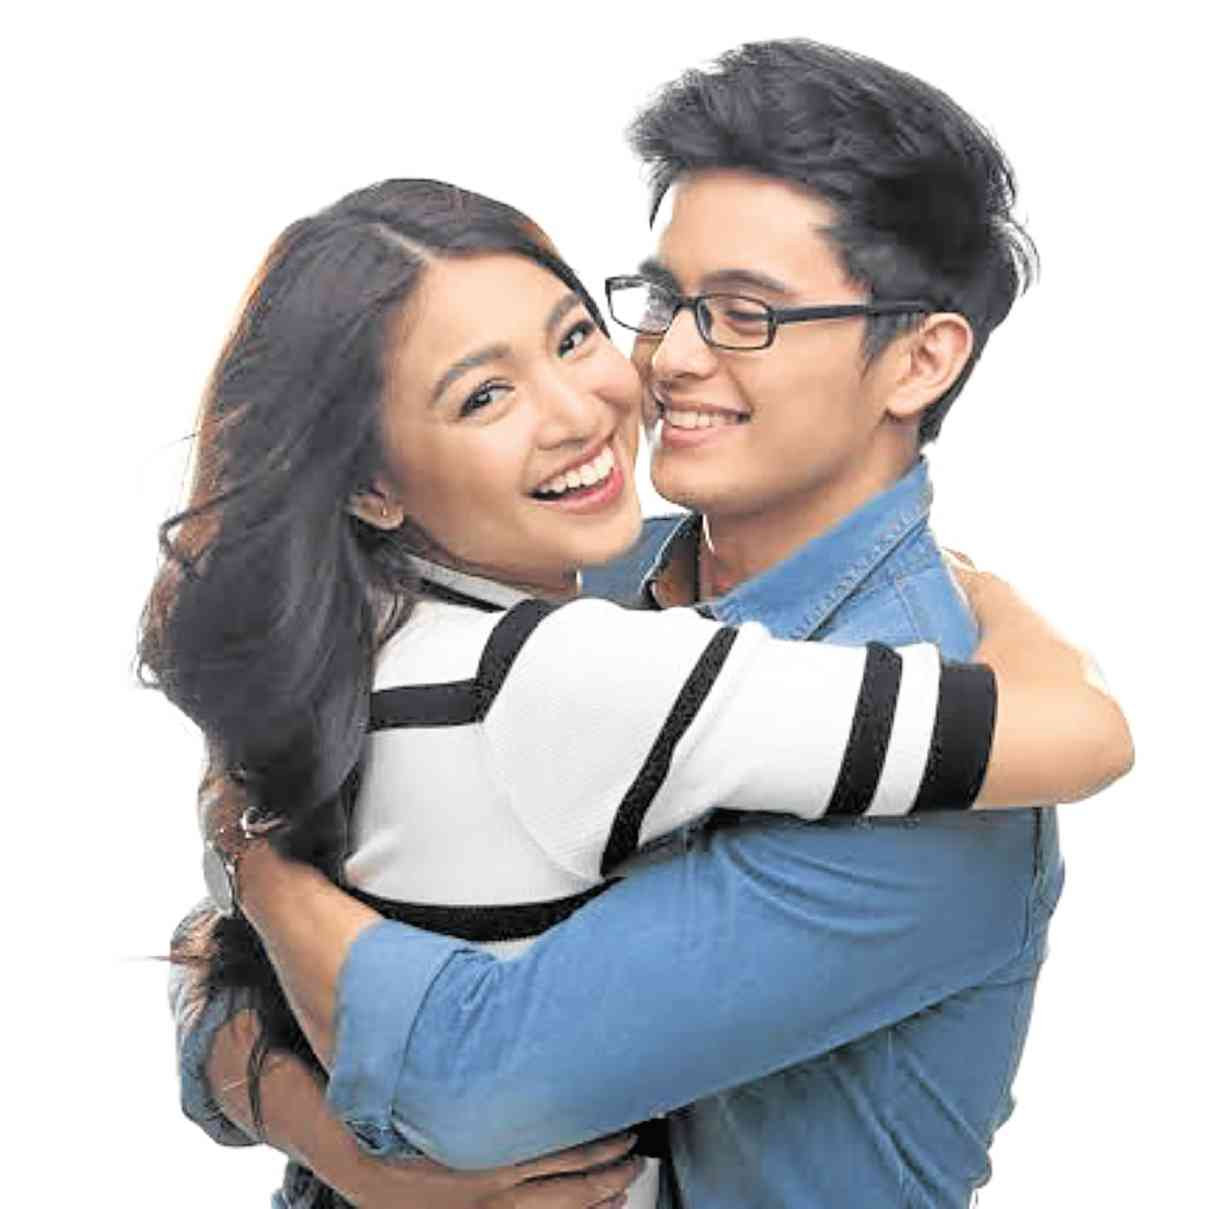 james reid and nadine lustre relationship status